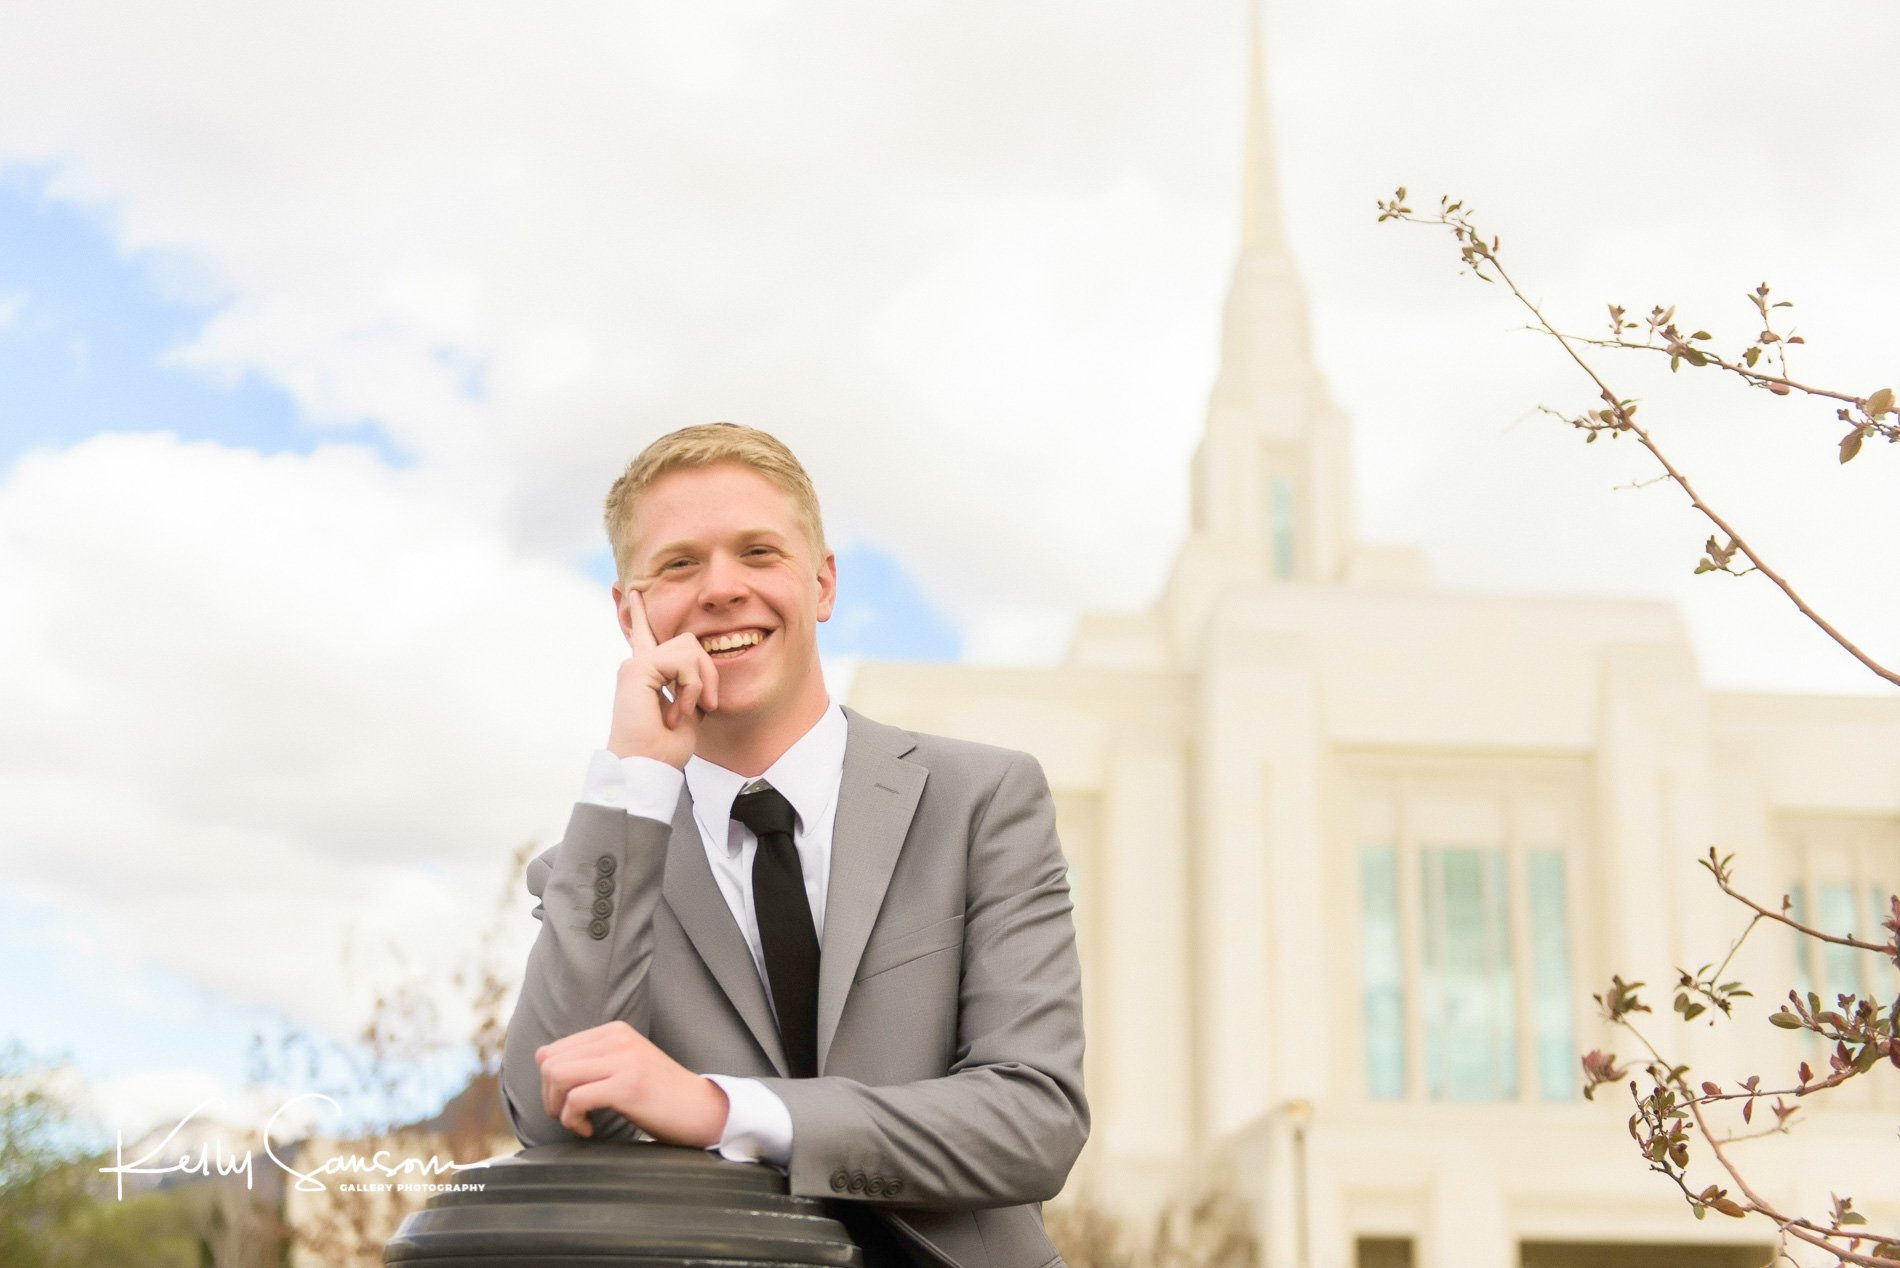 A young man standing in front of the Ogden Utah LDS temple for Ogden Photography.